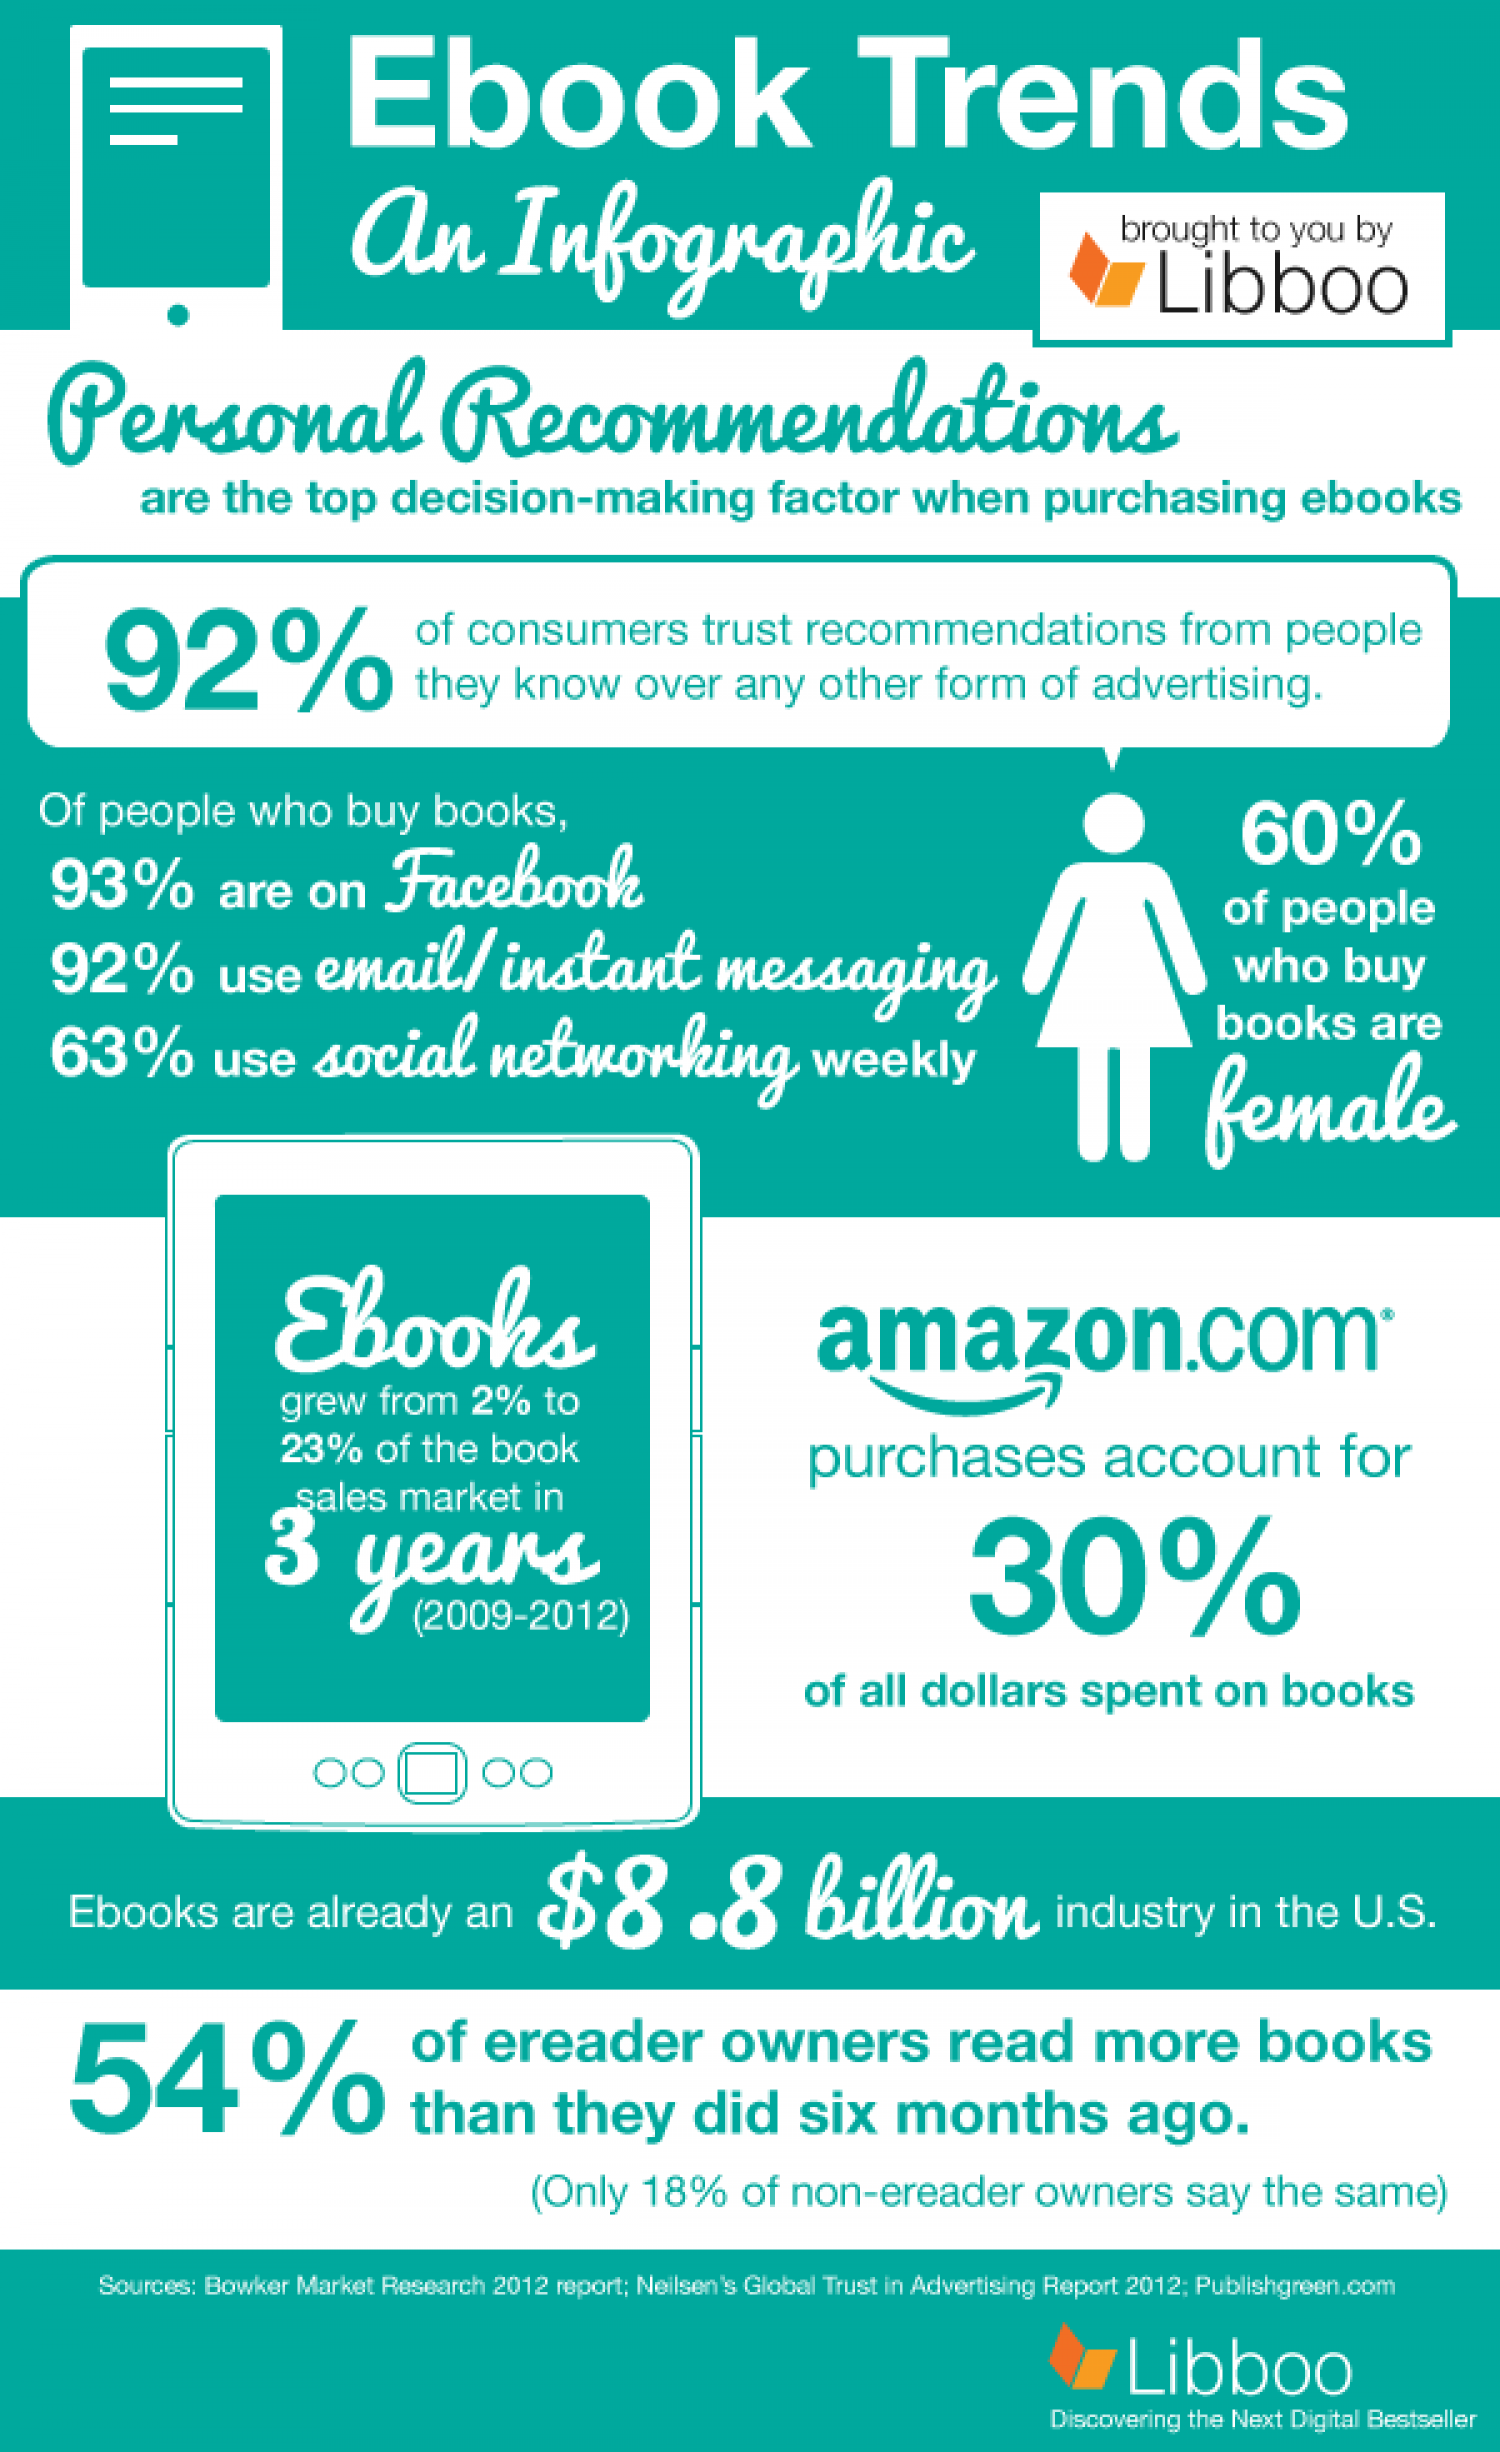 Ebook Trends Infographic